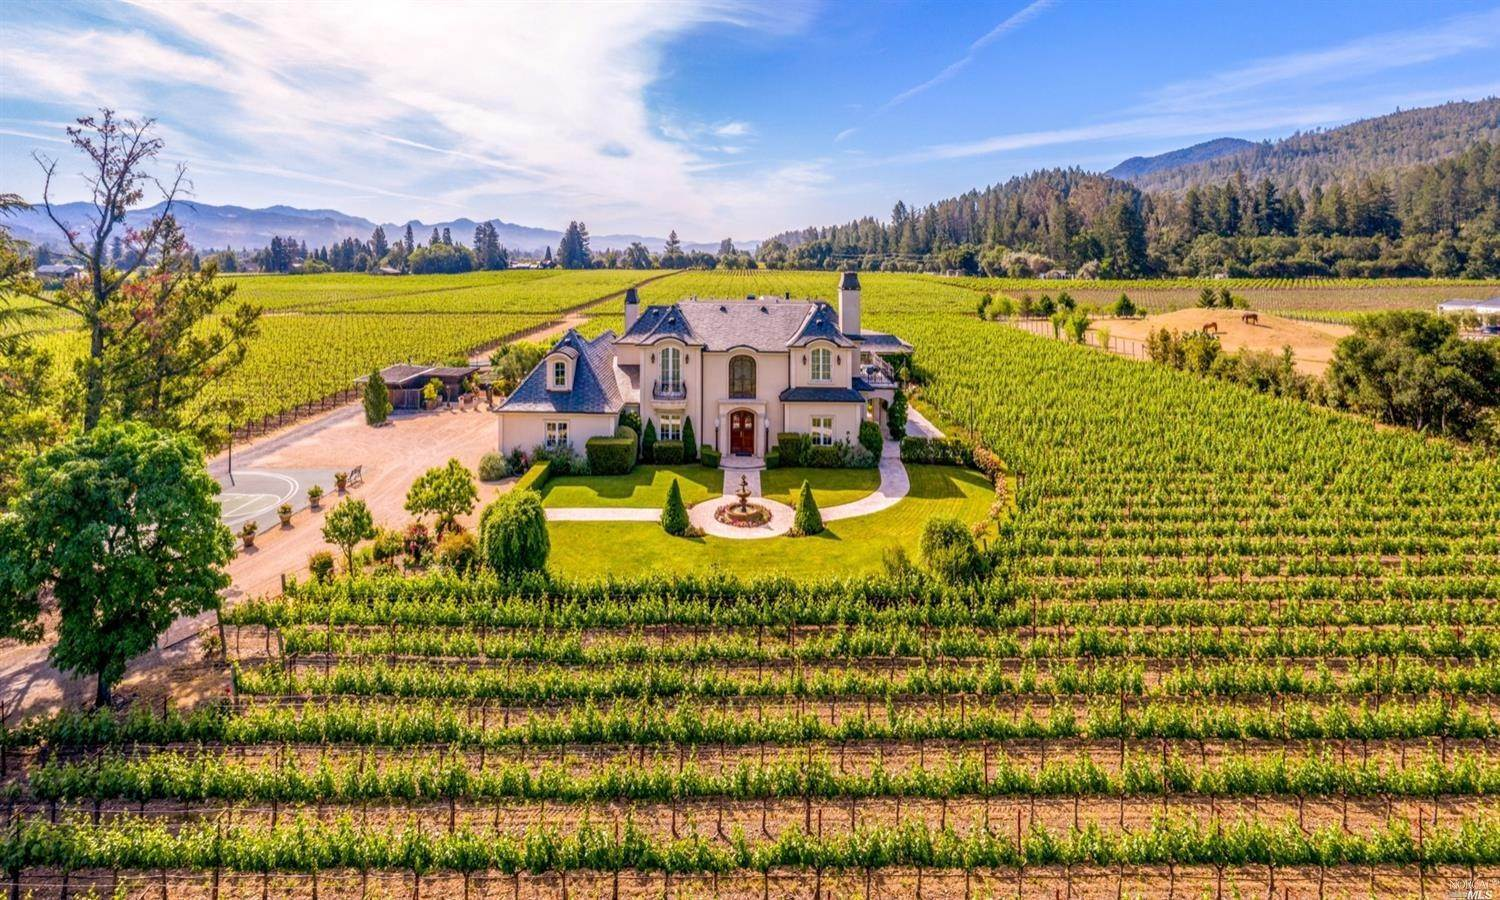 Single Family Homes for Sale at 2059 Vallejo Street, St. Helena St. Helena, California 94574 United States